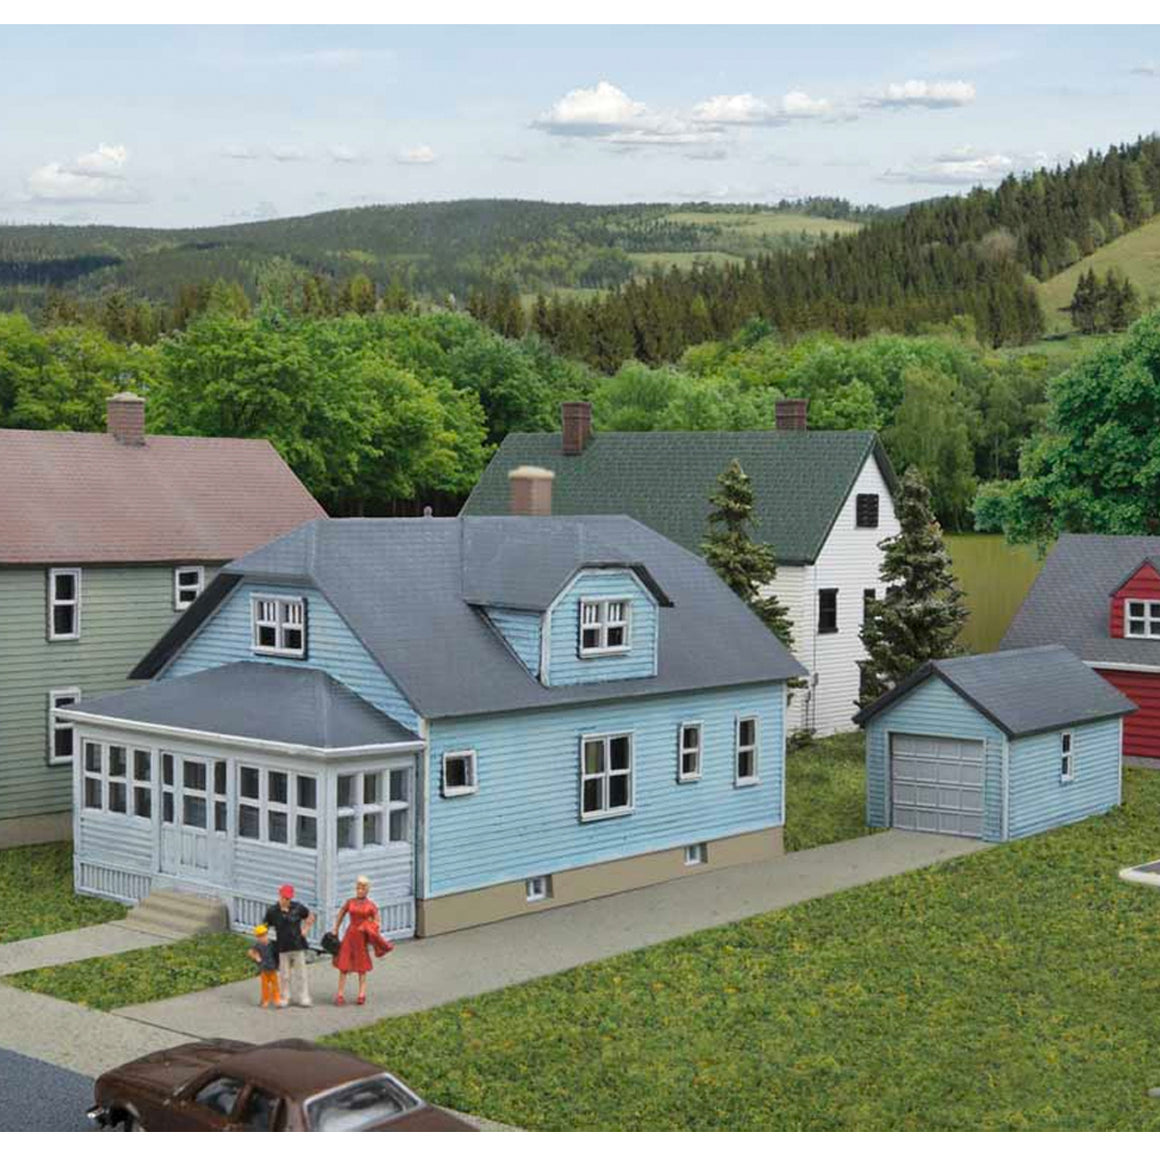 N Scale: American Bungalow - Kit